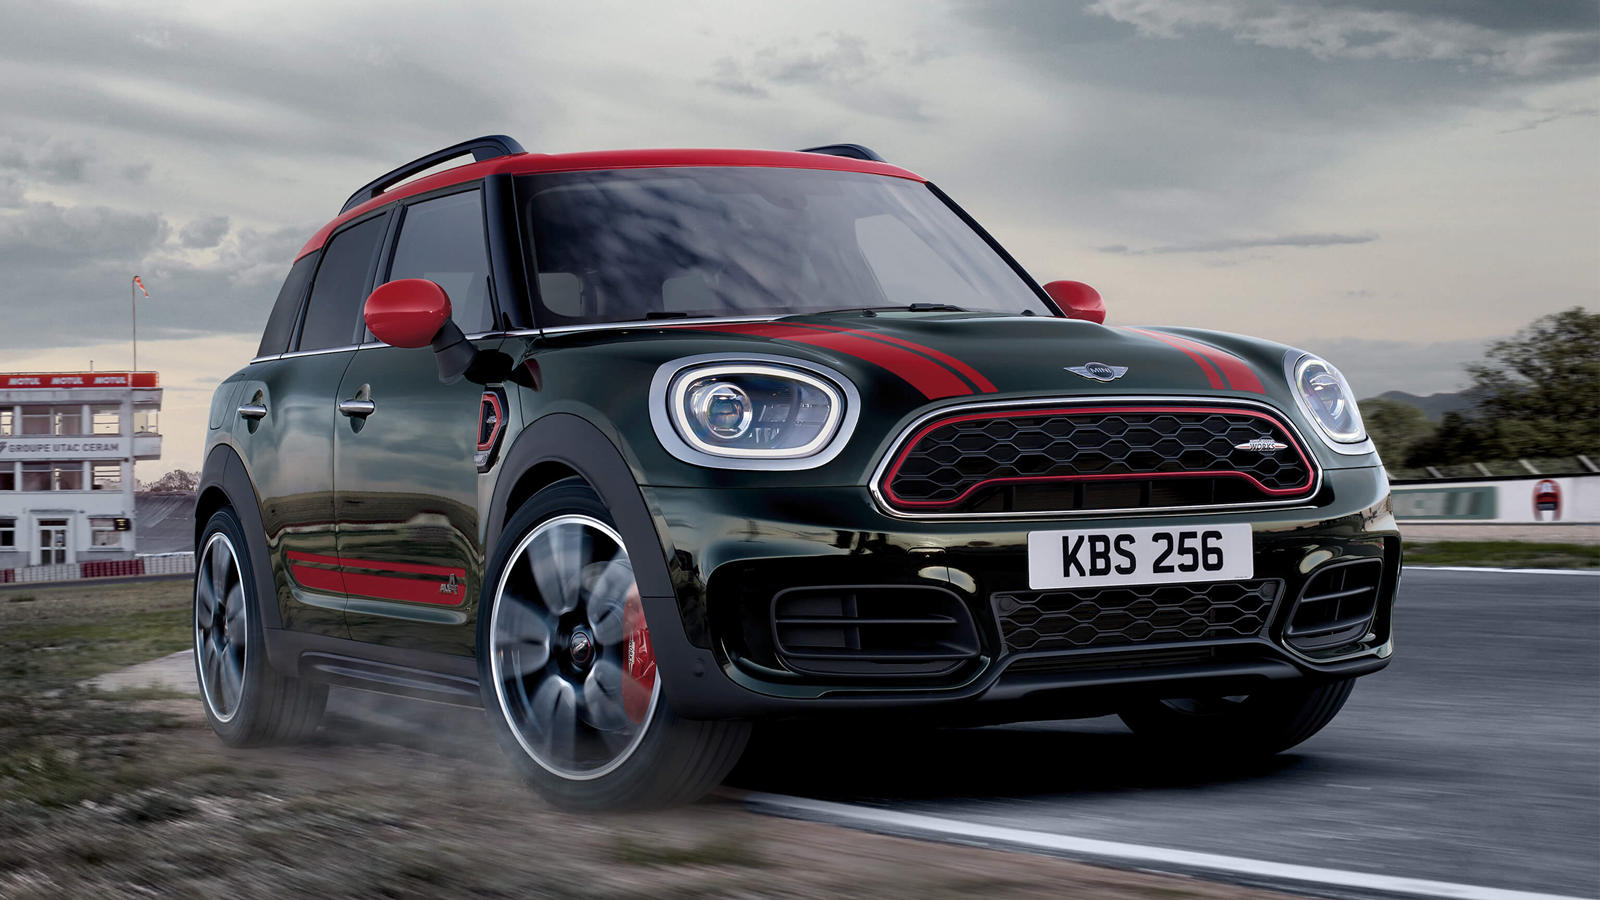 53 The Best 2020 Mini Countryman Style